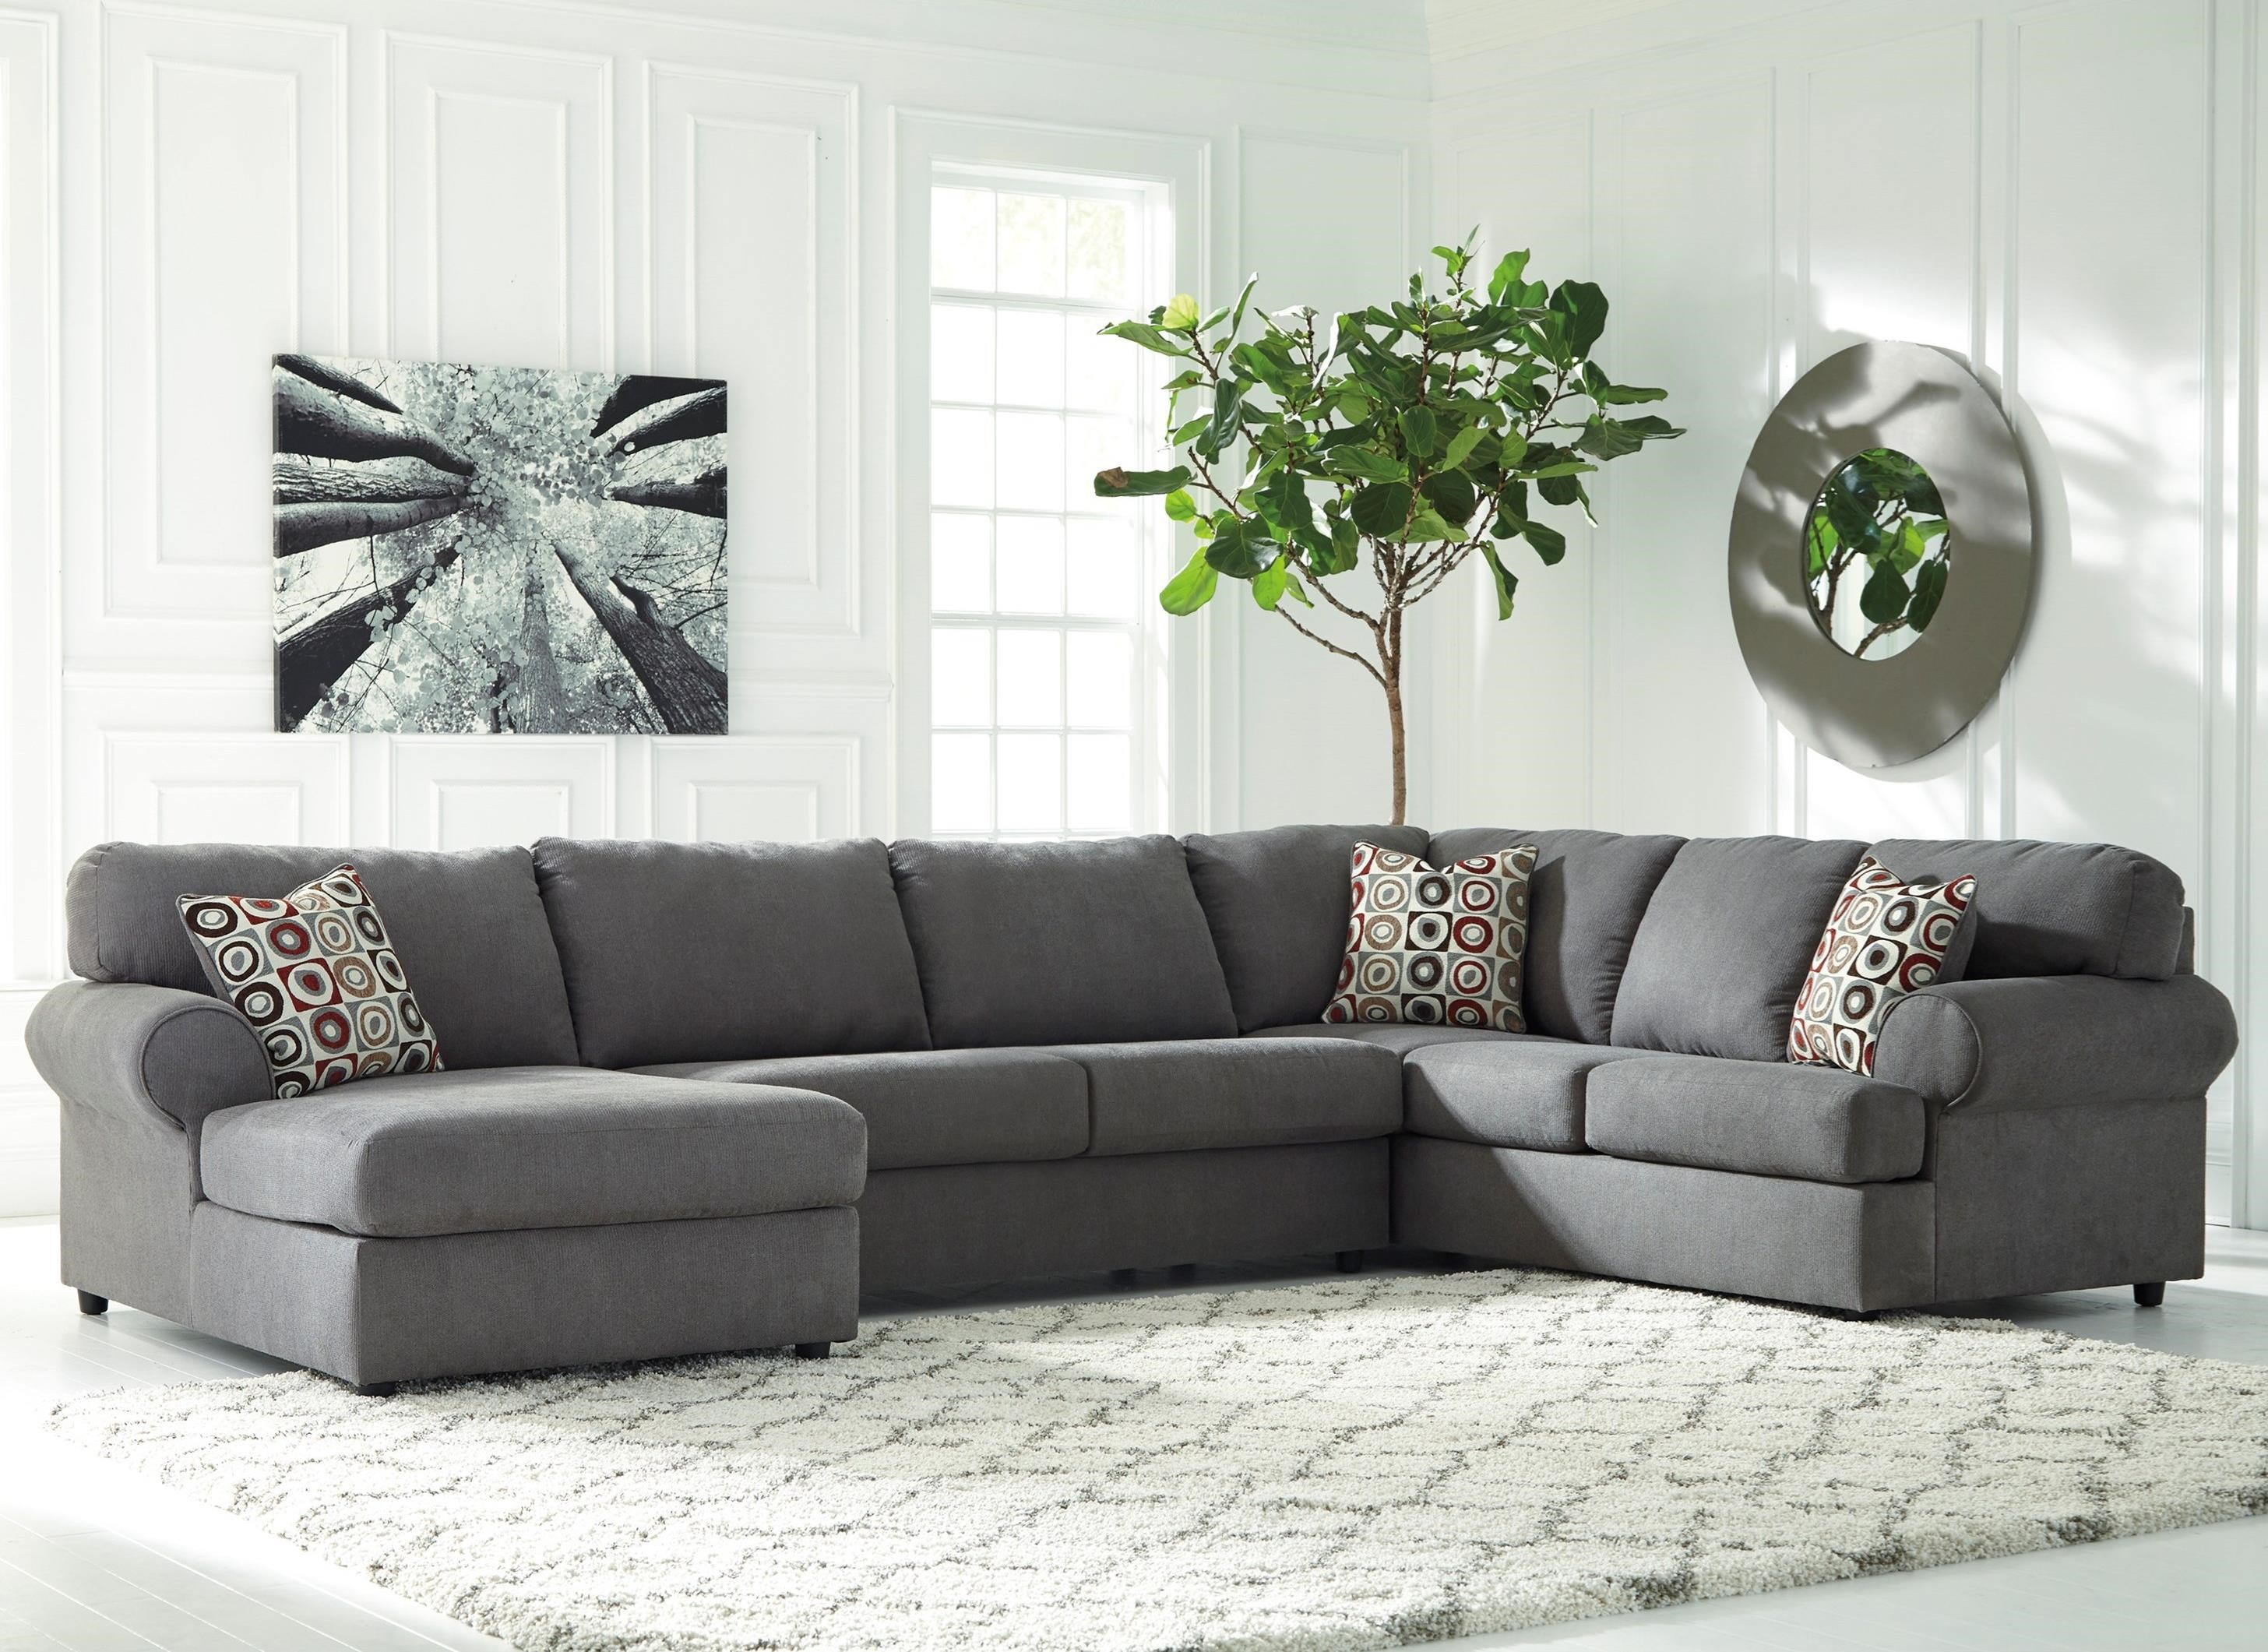 Benchcraft Jayceon 3-Piece Sectional with Chaise - Item Number: 6490216+34+67